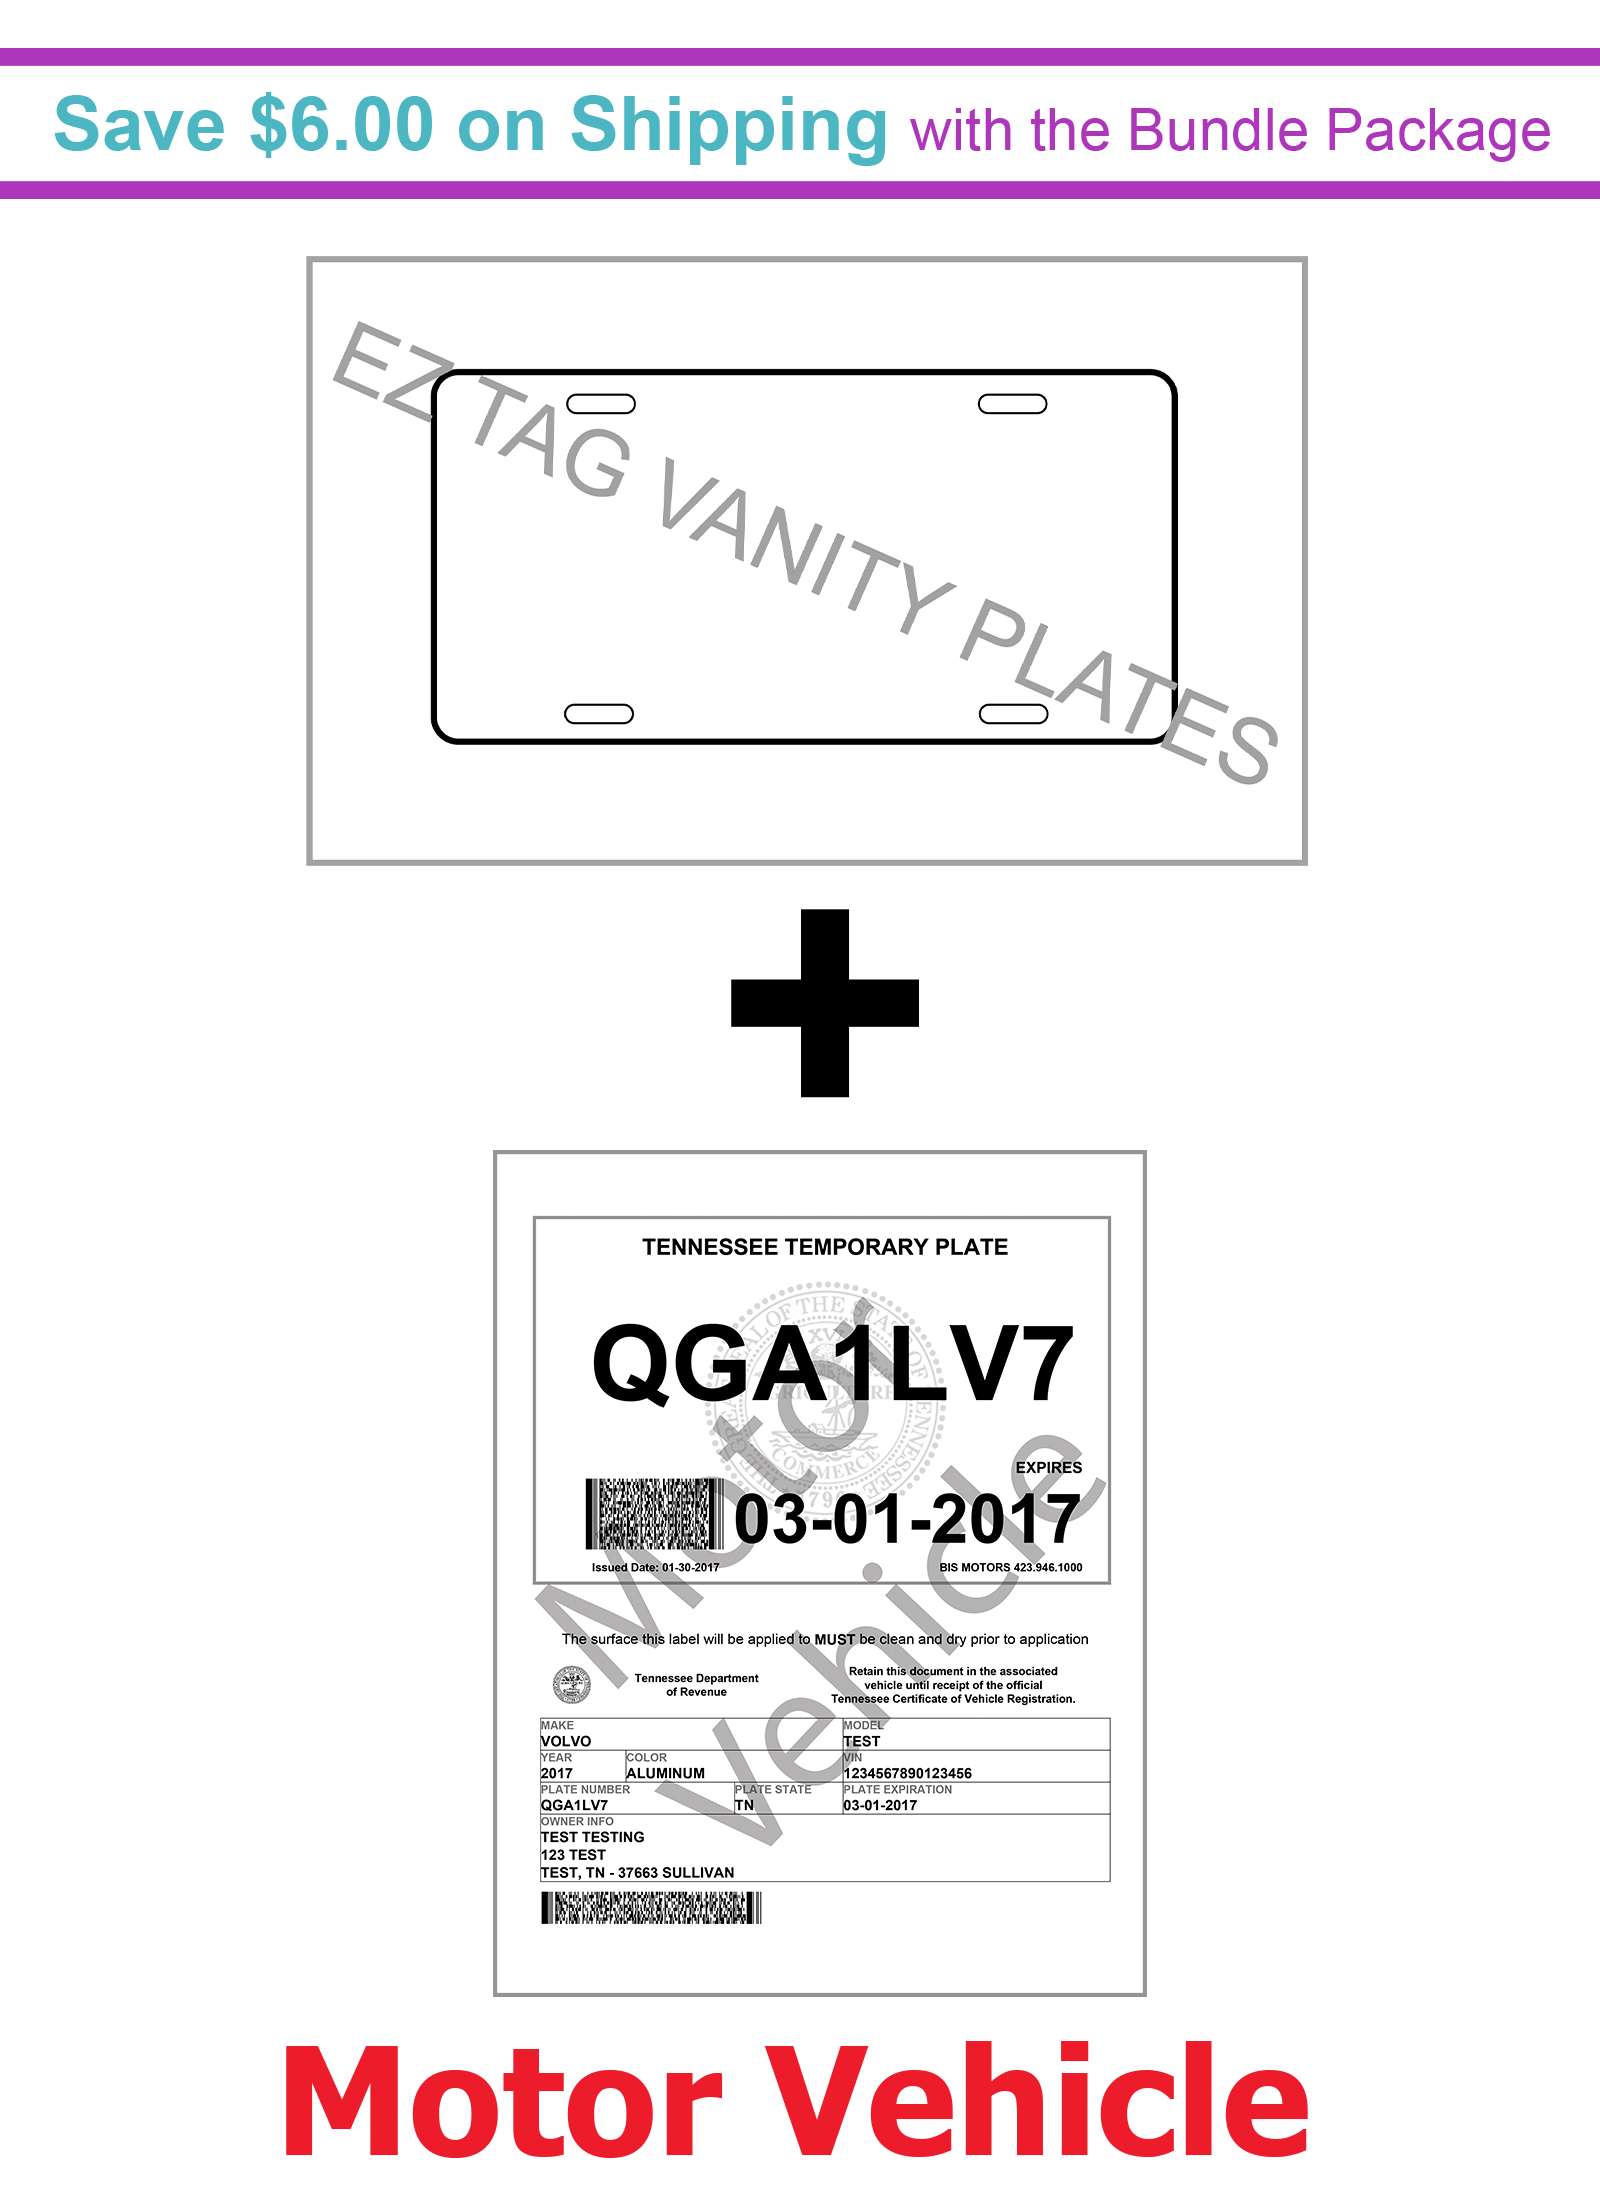 EZ Tag Motor Vehicle Paper (100 pack) and Vanity Plates (100 pack) - Save $6.00 on Shipping with Bundling